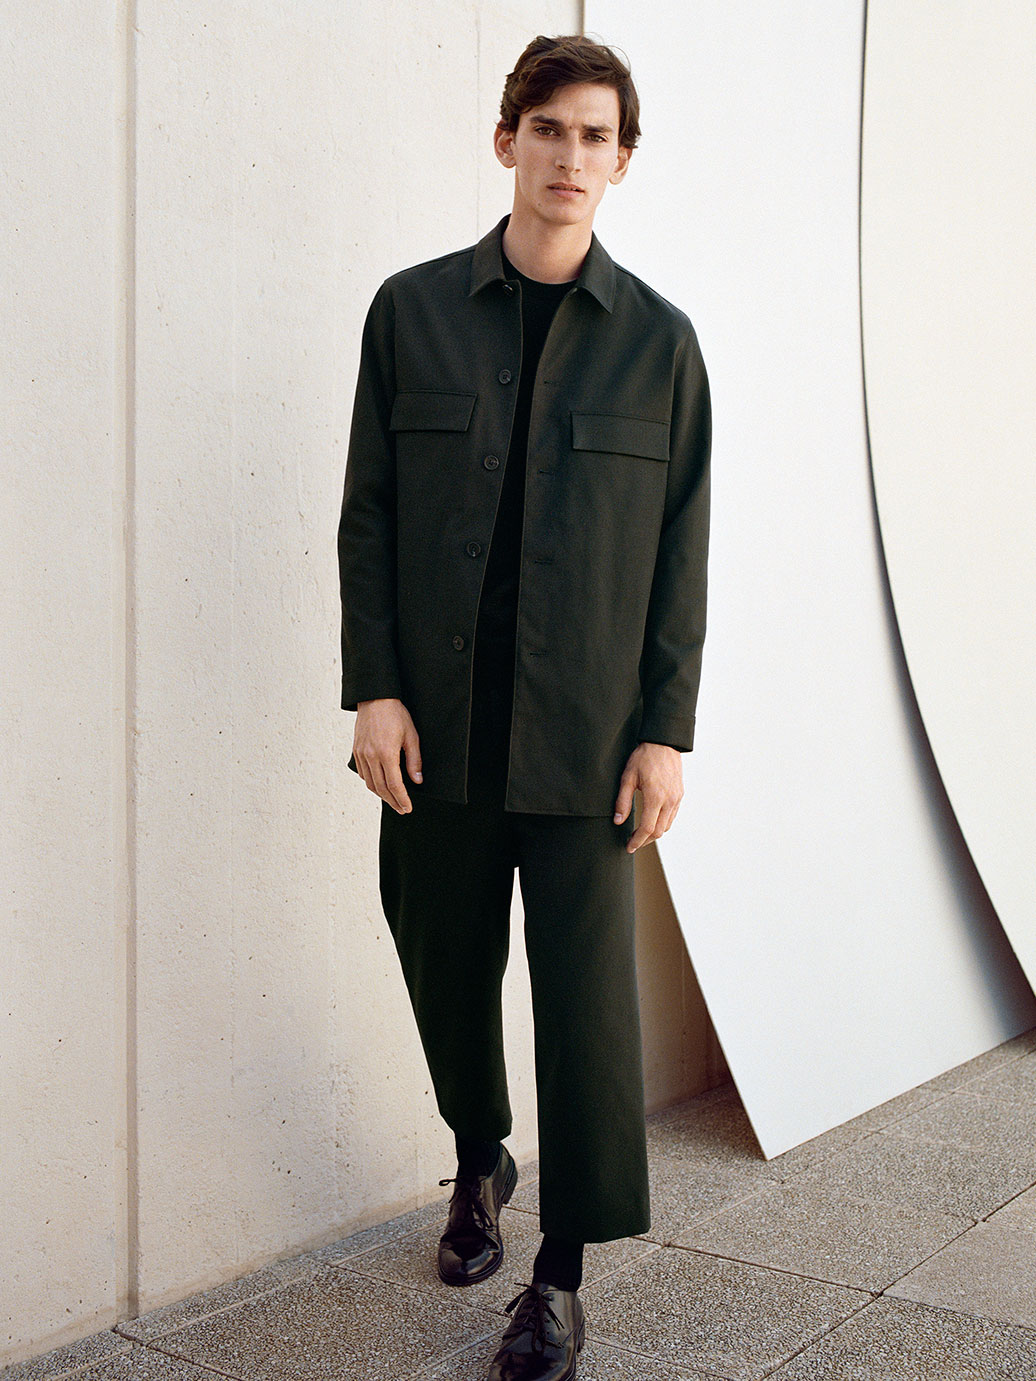 Long cotton-twill overshirt , £89  Round-neck merino jumper , £59  Cropped wide-leg trousers , £69  Leather Derby shoes , £125